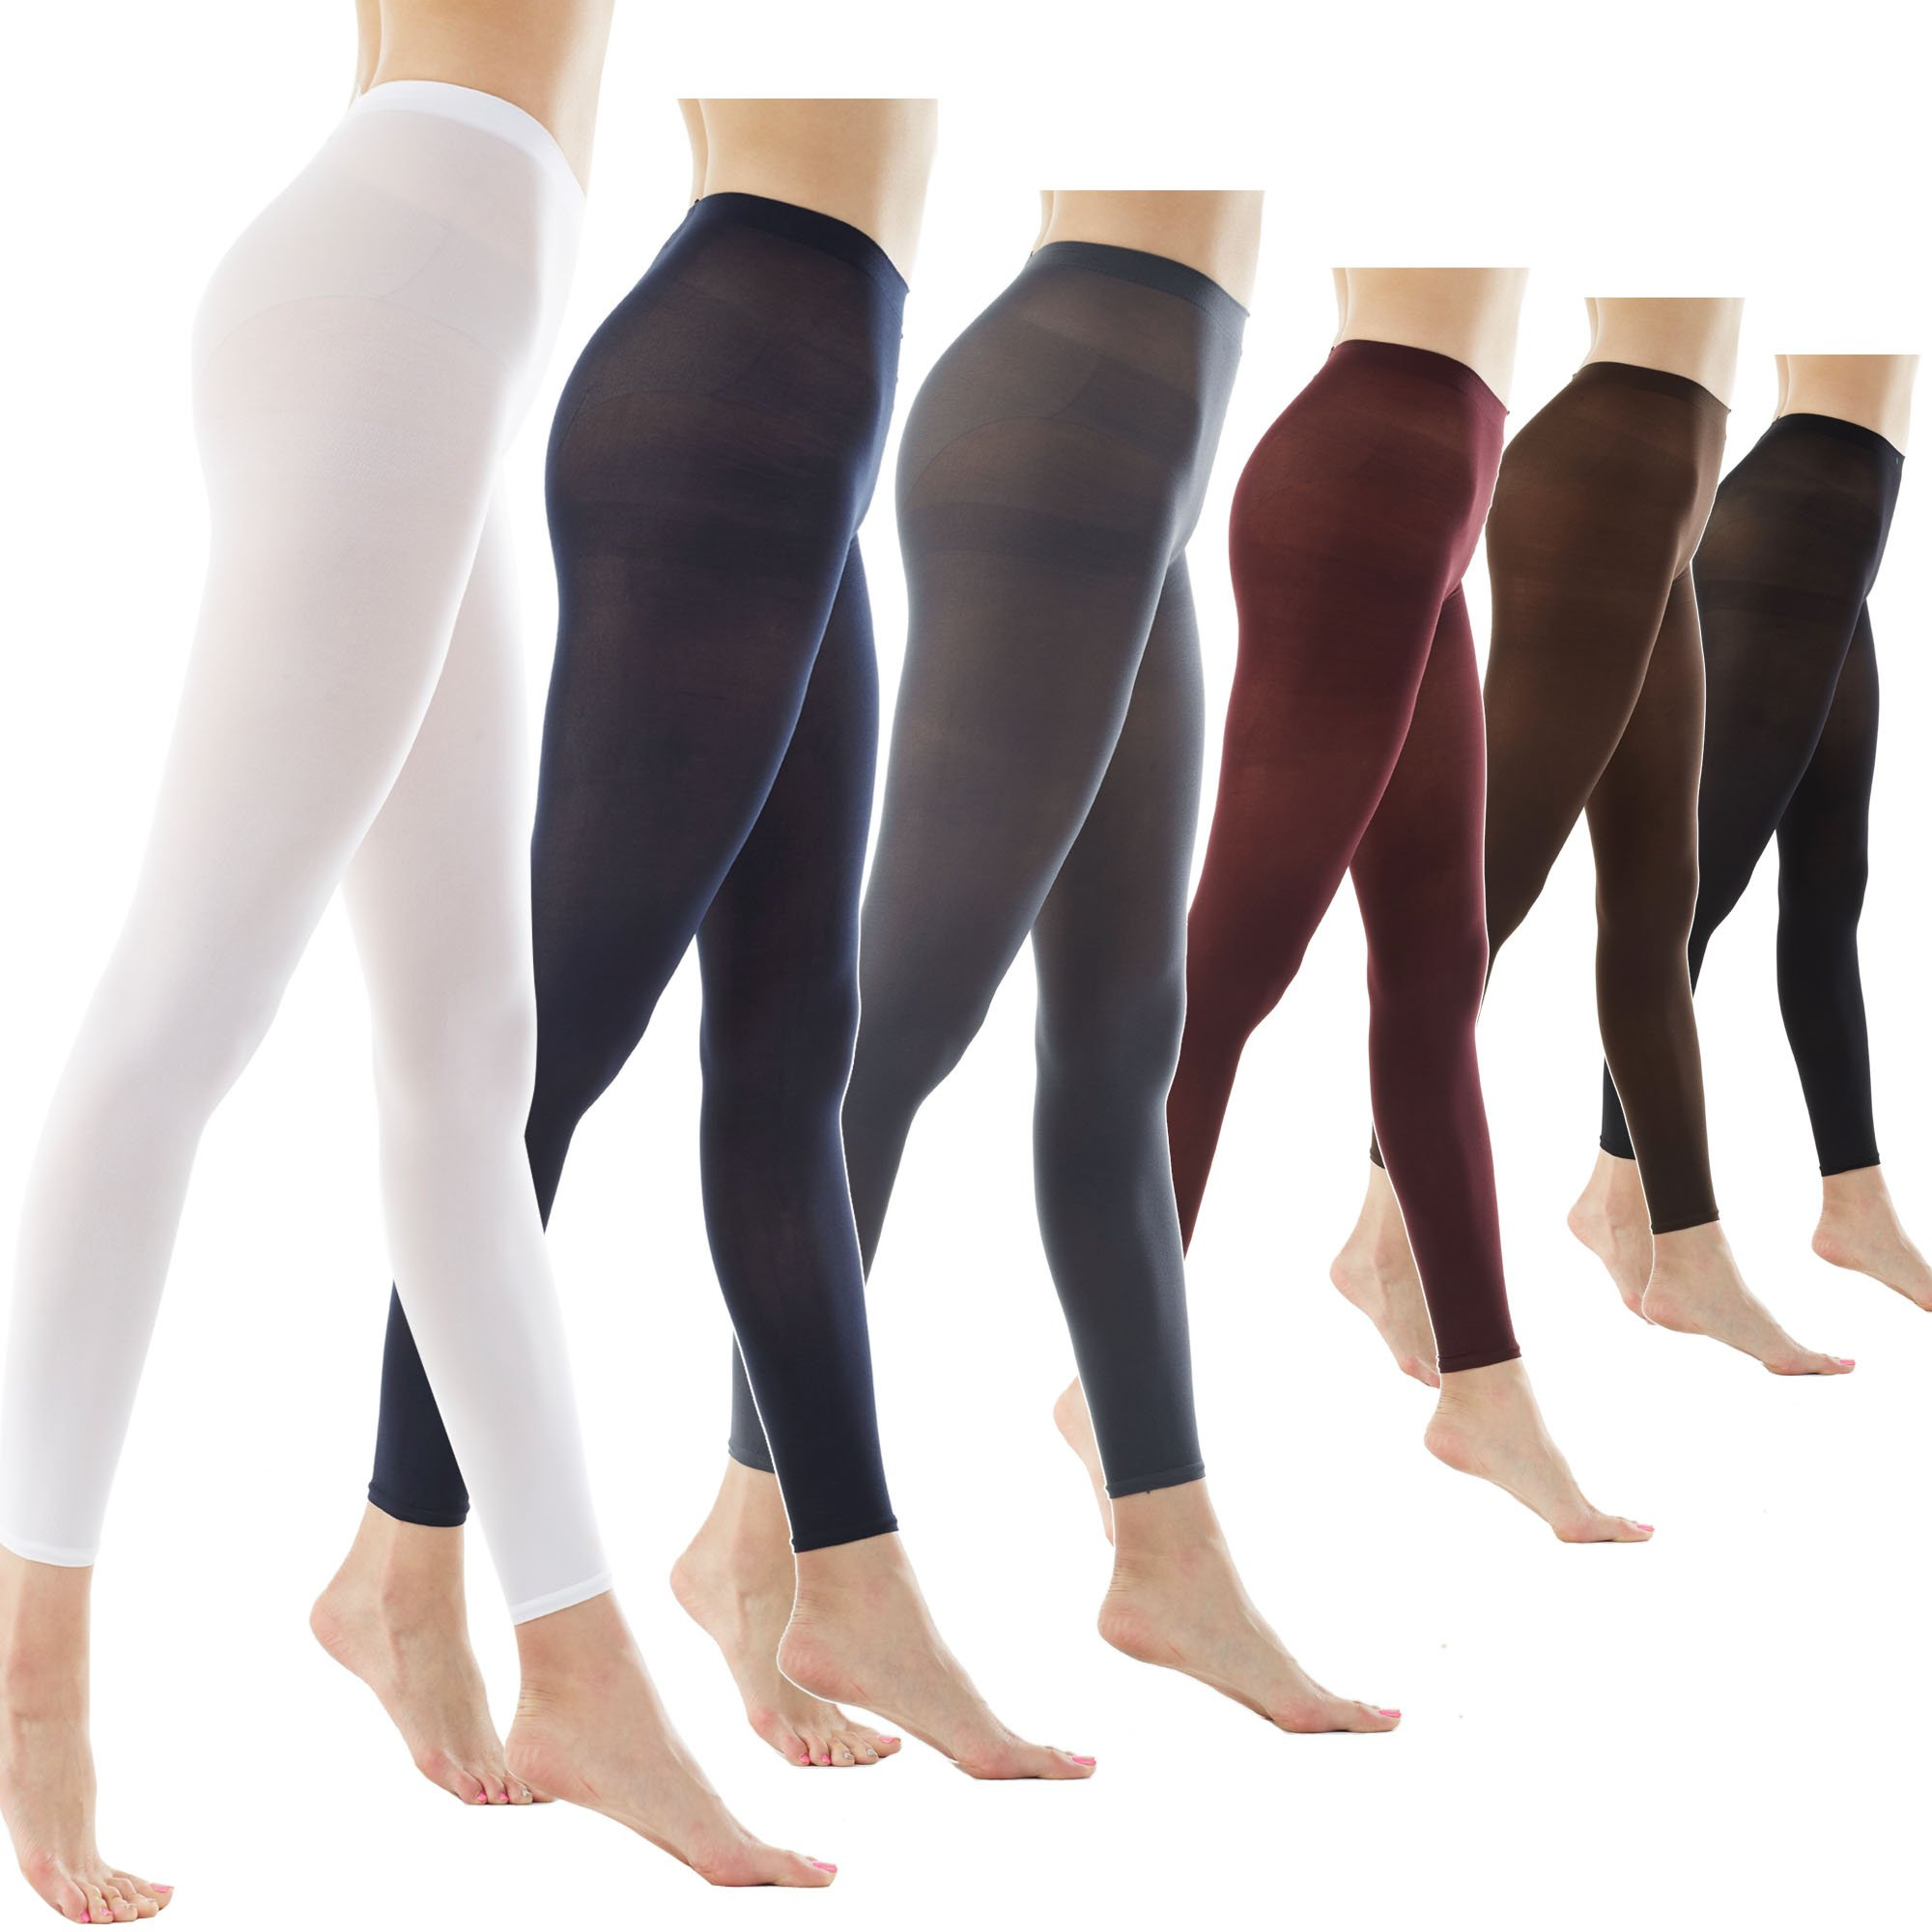 Women's 80Denier Semi Opaque Solid Color Footless Pantyhose Tights 2pair or 6pair (X-Large, 6PAIR - Black/Darknavy/Darkgray/Brown/Maroon/White)